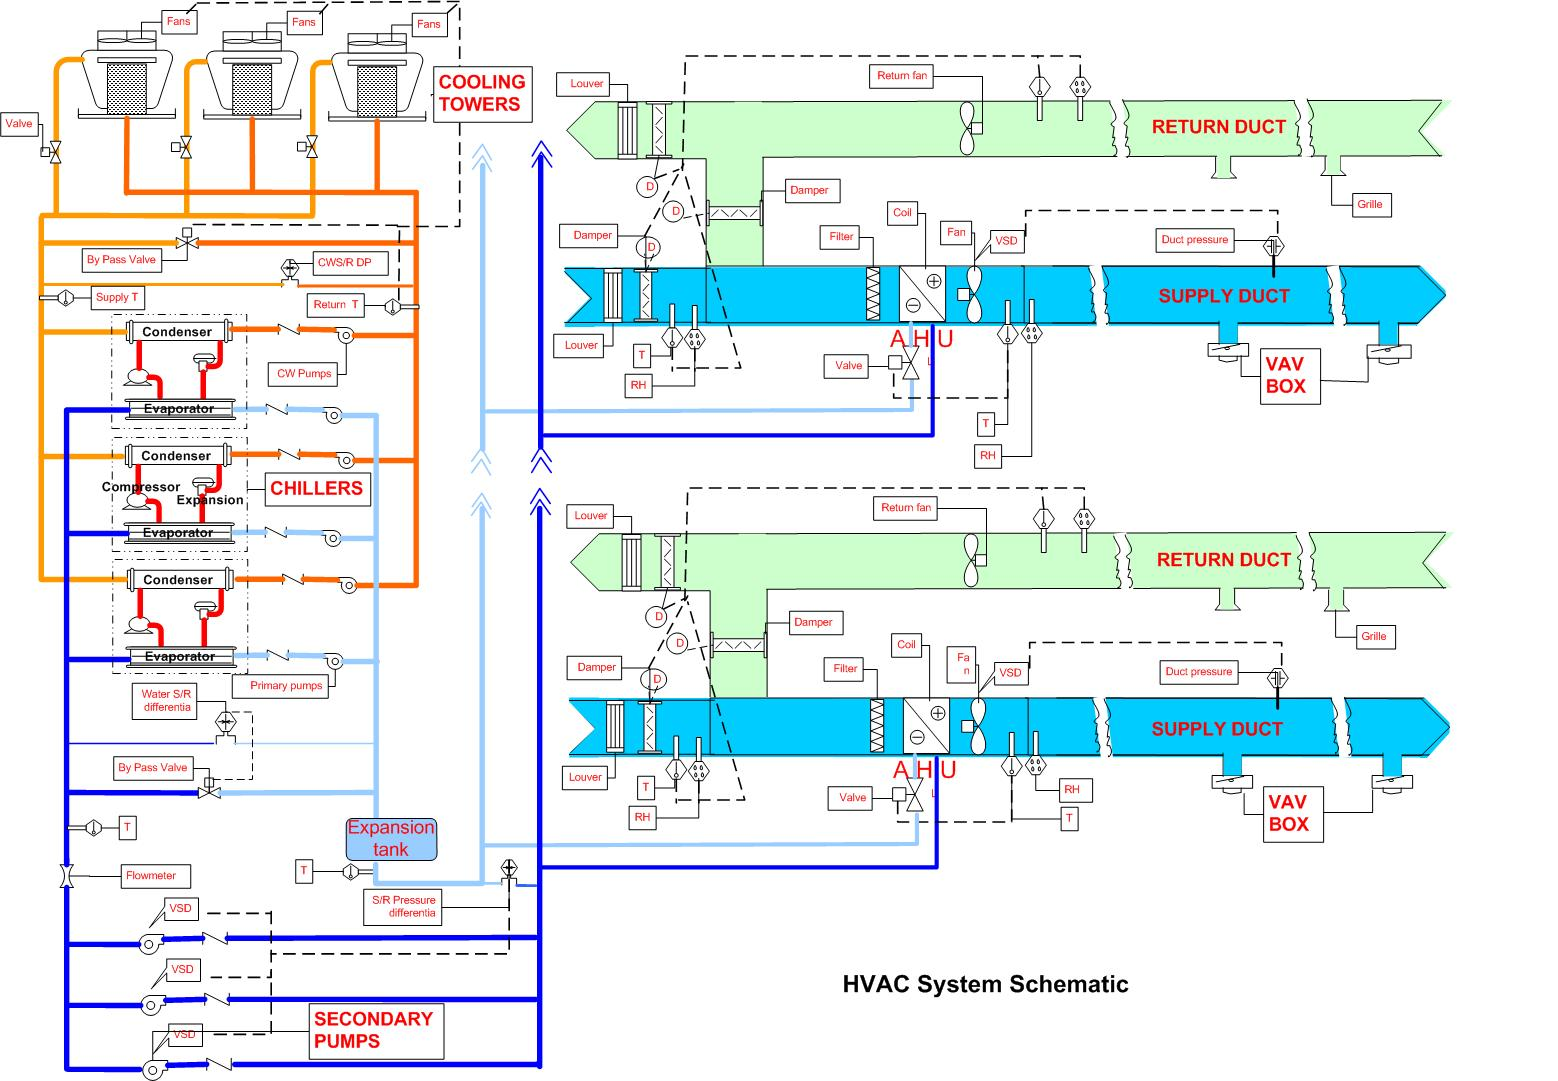 schematic schematic diagram for air conditioning system circuit and hvac circuit diagram at gsmx.co